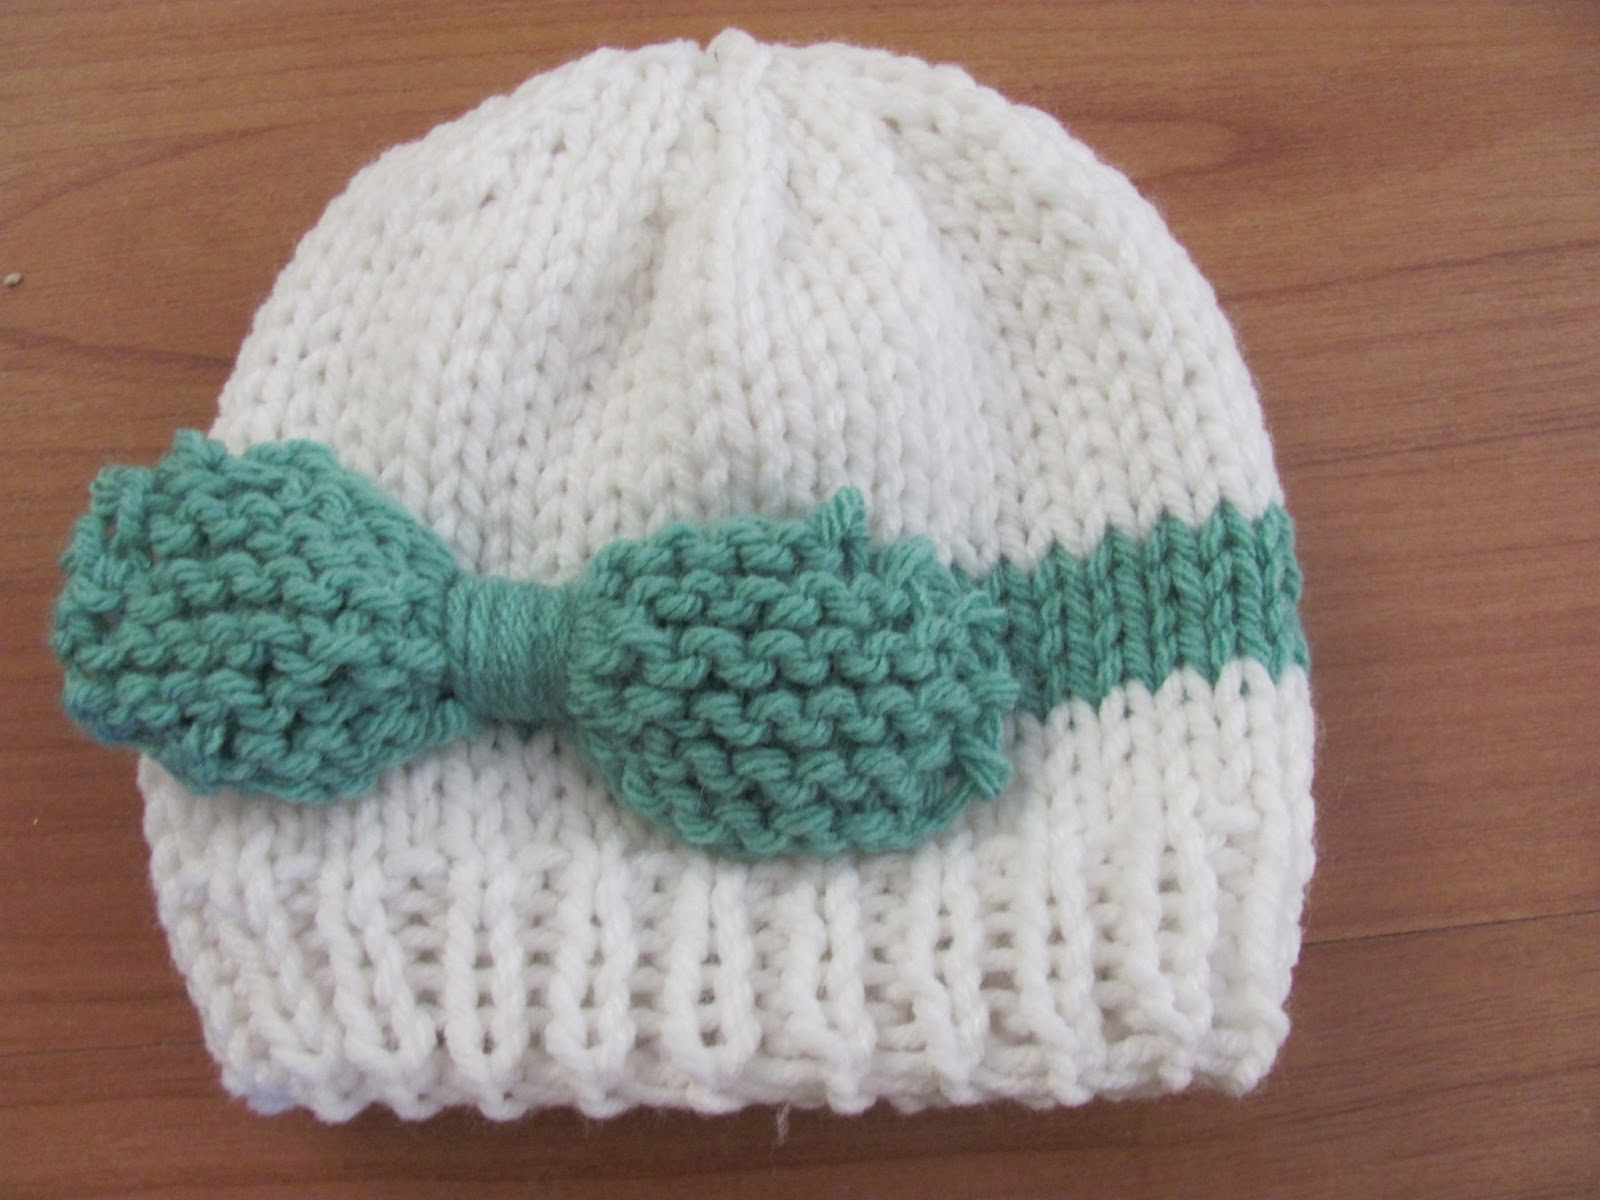 Knitting Patterns For Toddler Hats : Twenty Something Granny: Knitted Baby Bow Hat